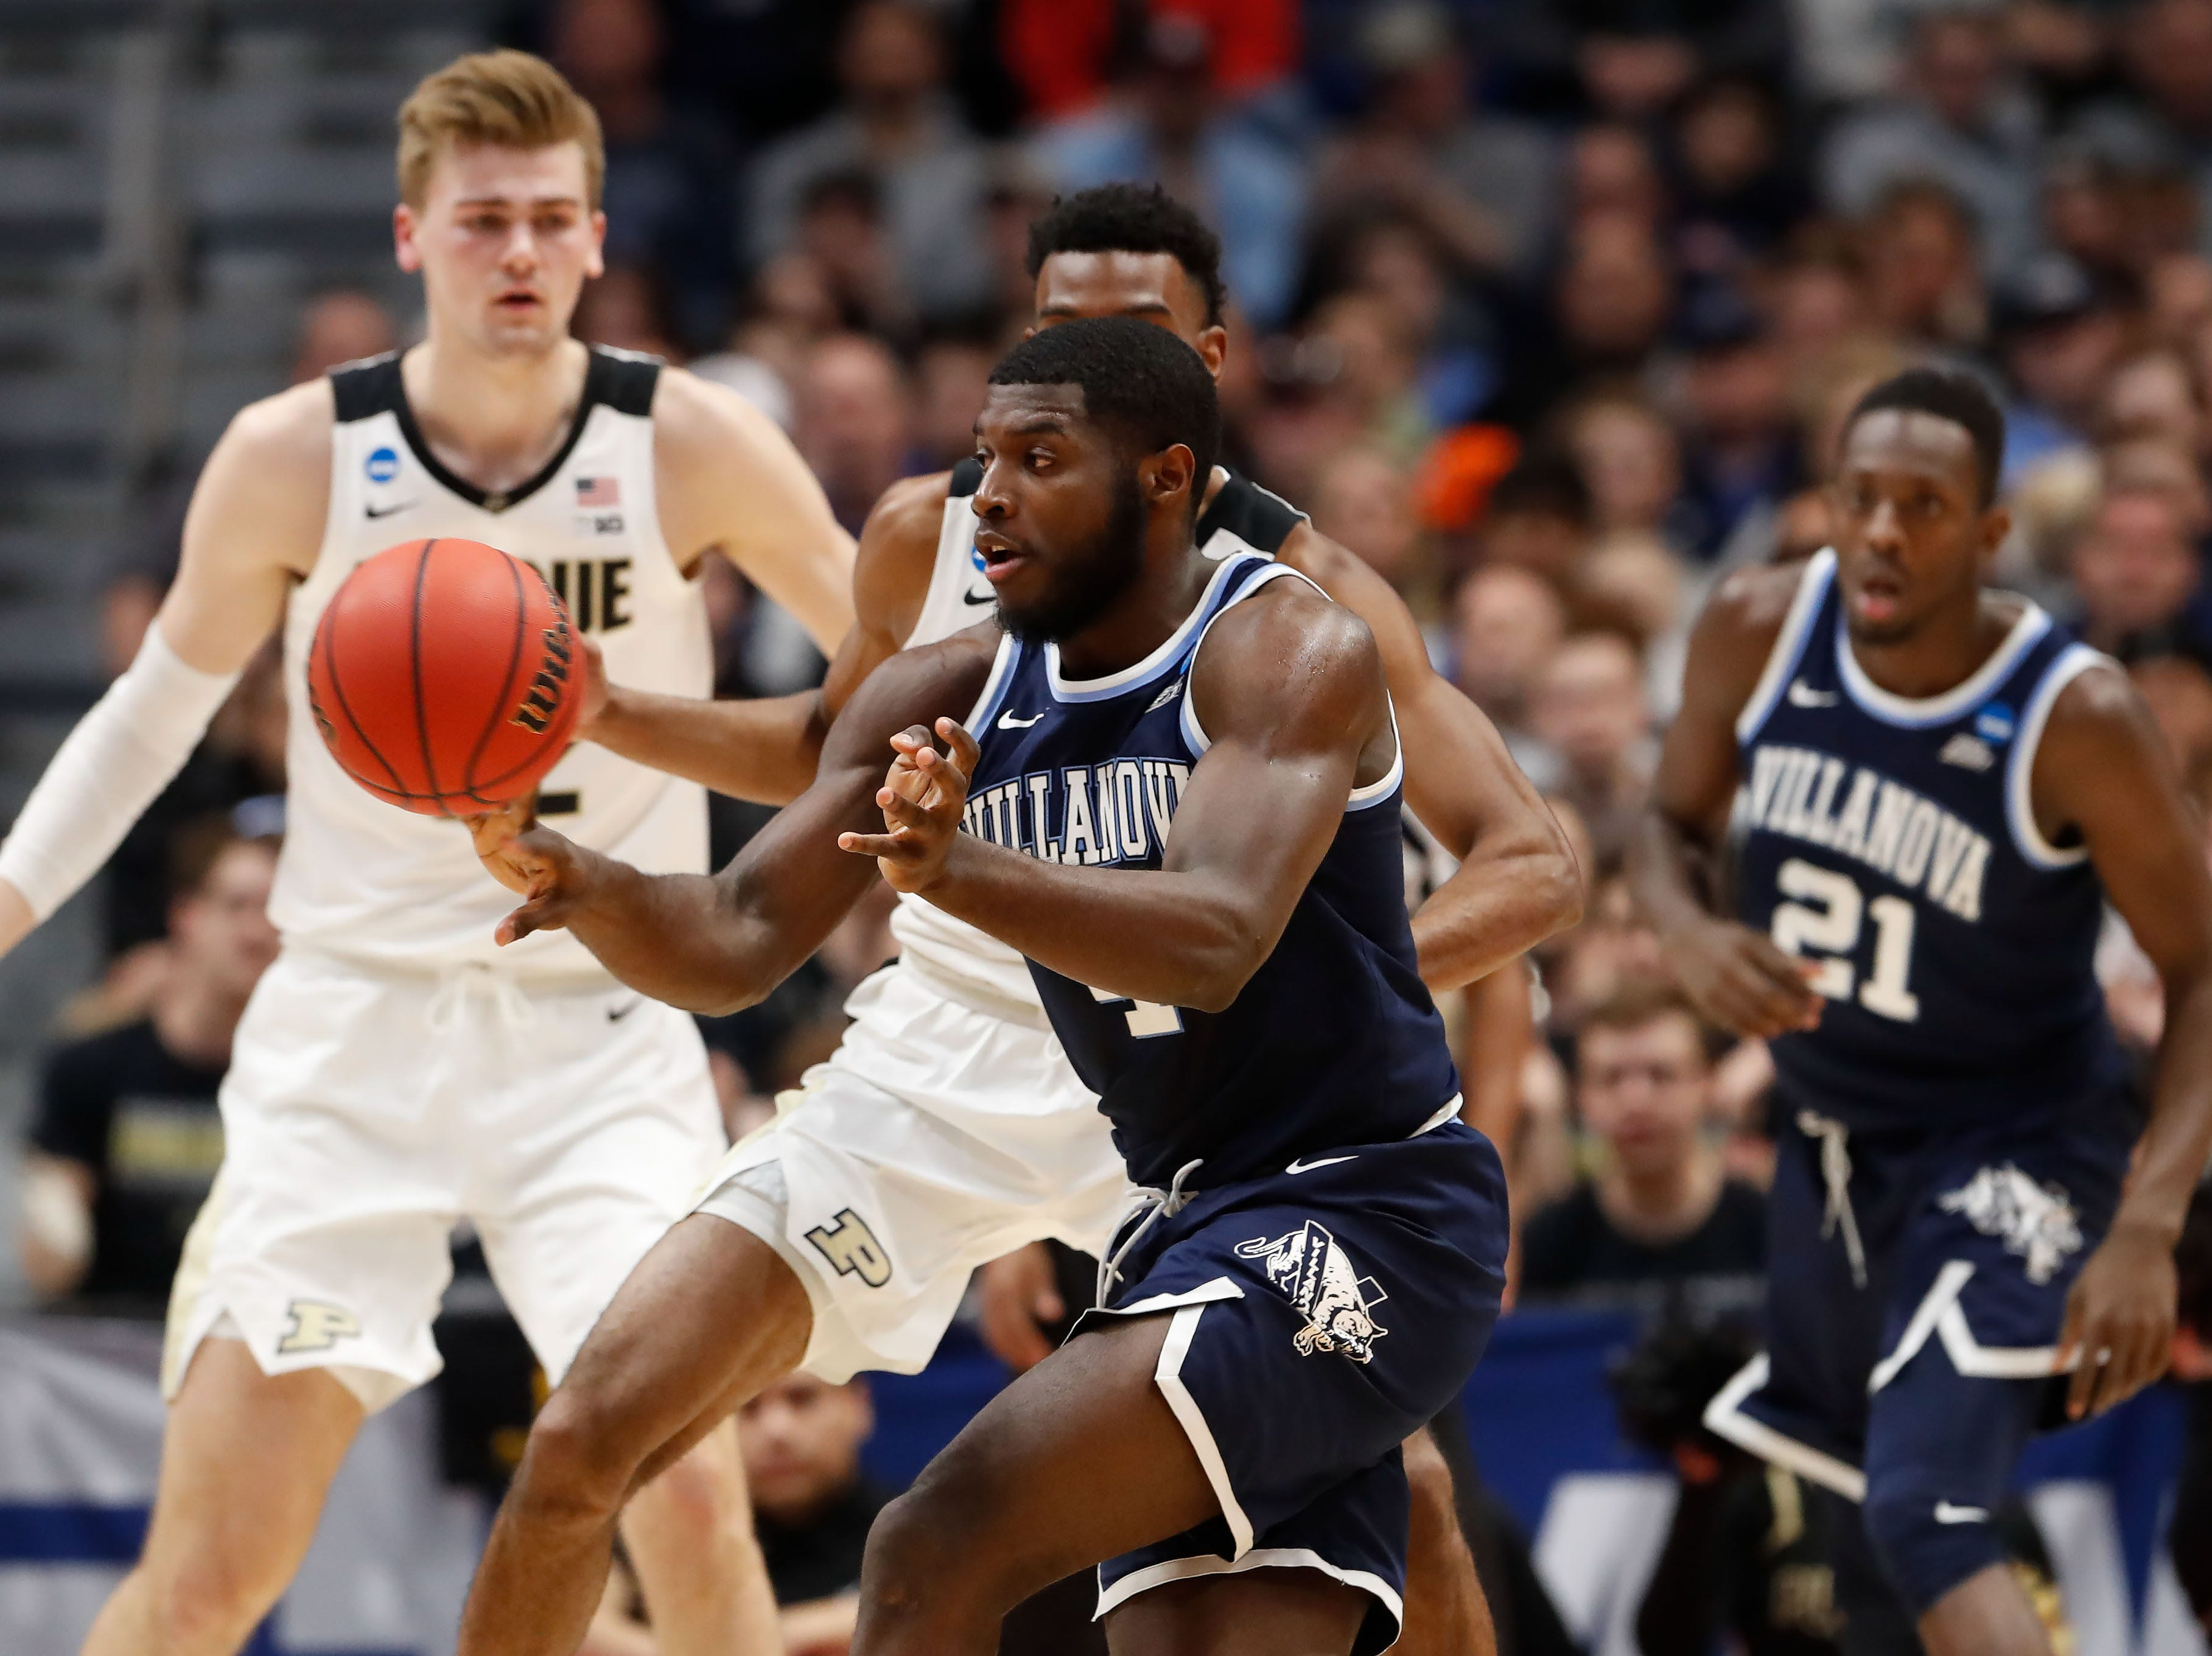 Mar 23, 2019; Hartford, CT, USA; Villanova Wildcats forward Eric Paschall (4) passes the ball during the first half of a game against the Purdue Boilermakers in the second round of the 2019 NCAA Tournament at XL Center. Mandatory Credit: David Butler II-USA TODAY Sports